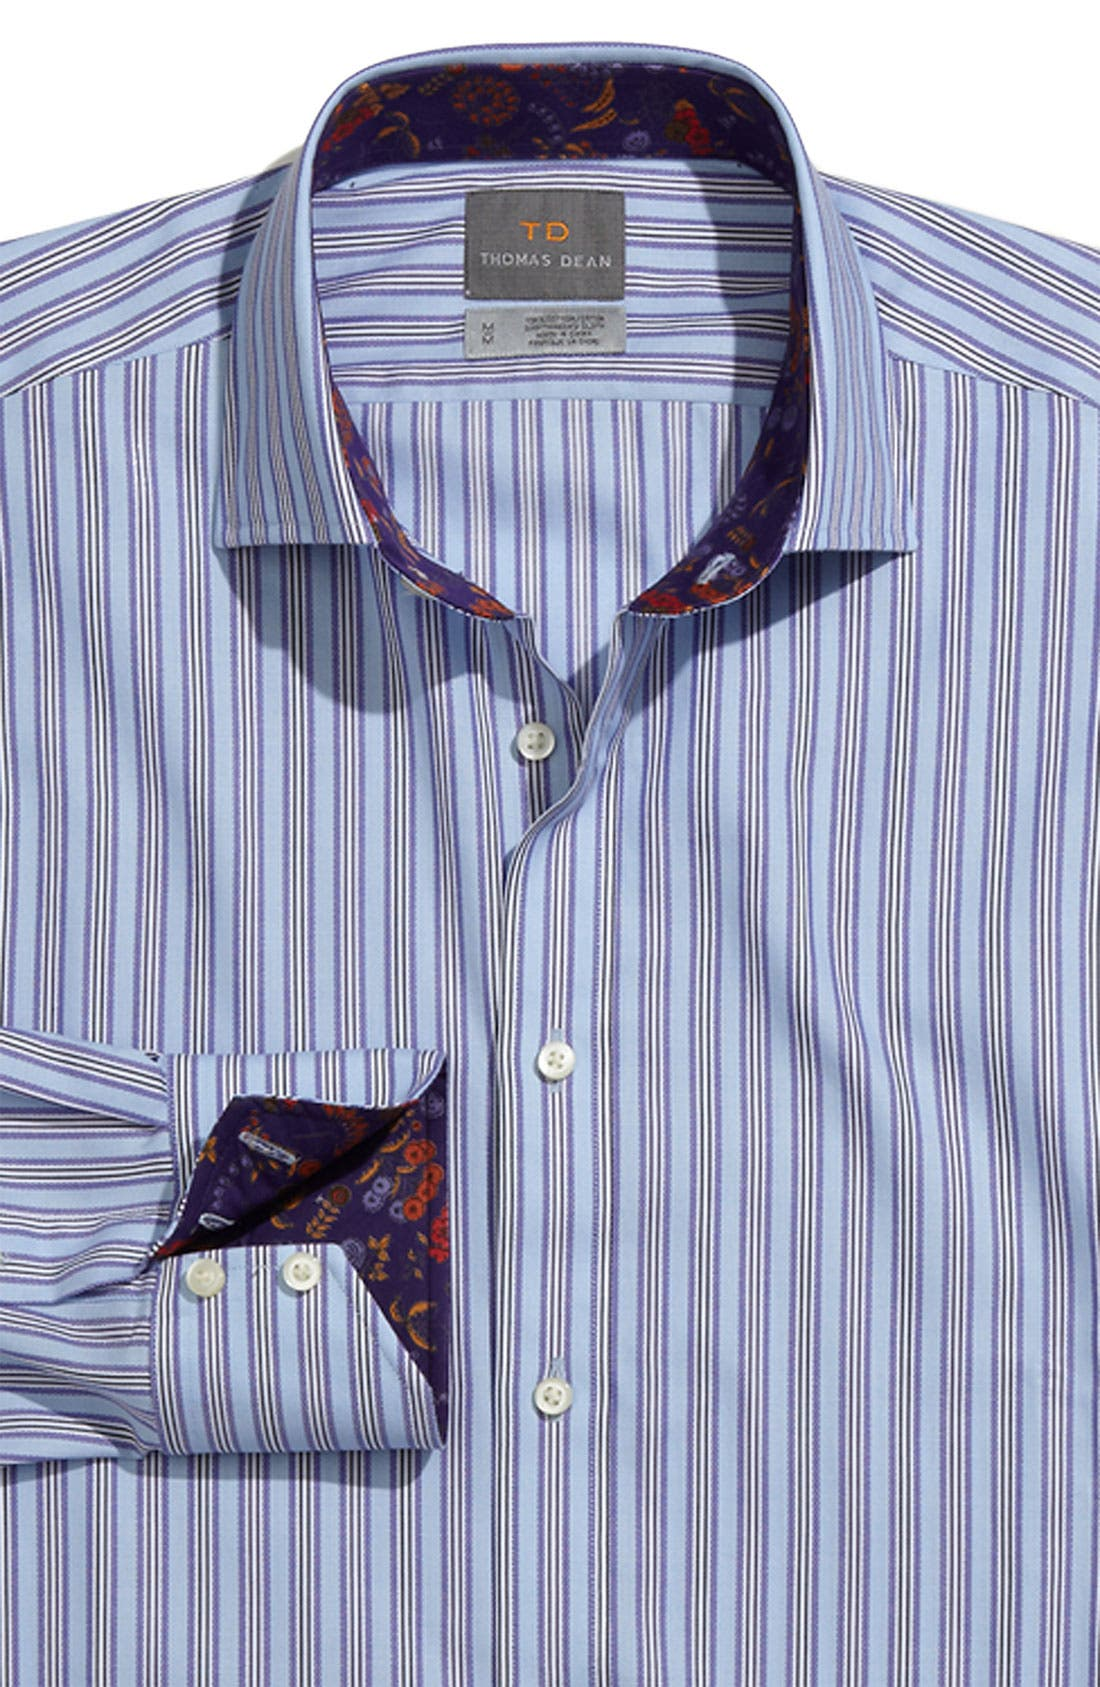 THOMAS DEAN 'Multi Bar Stripe' Sport Shirt, Main, color, 530